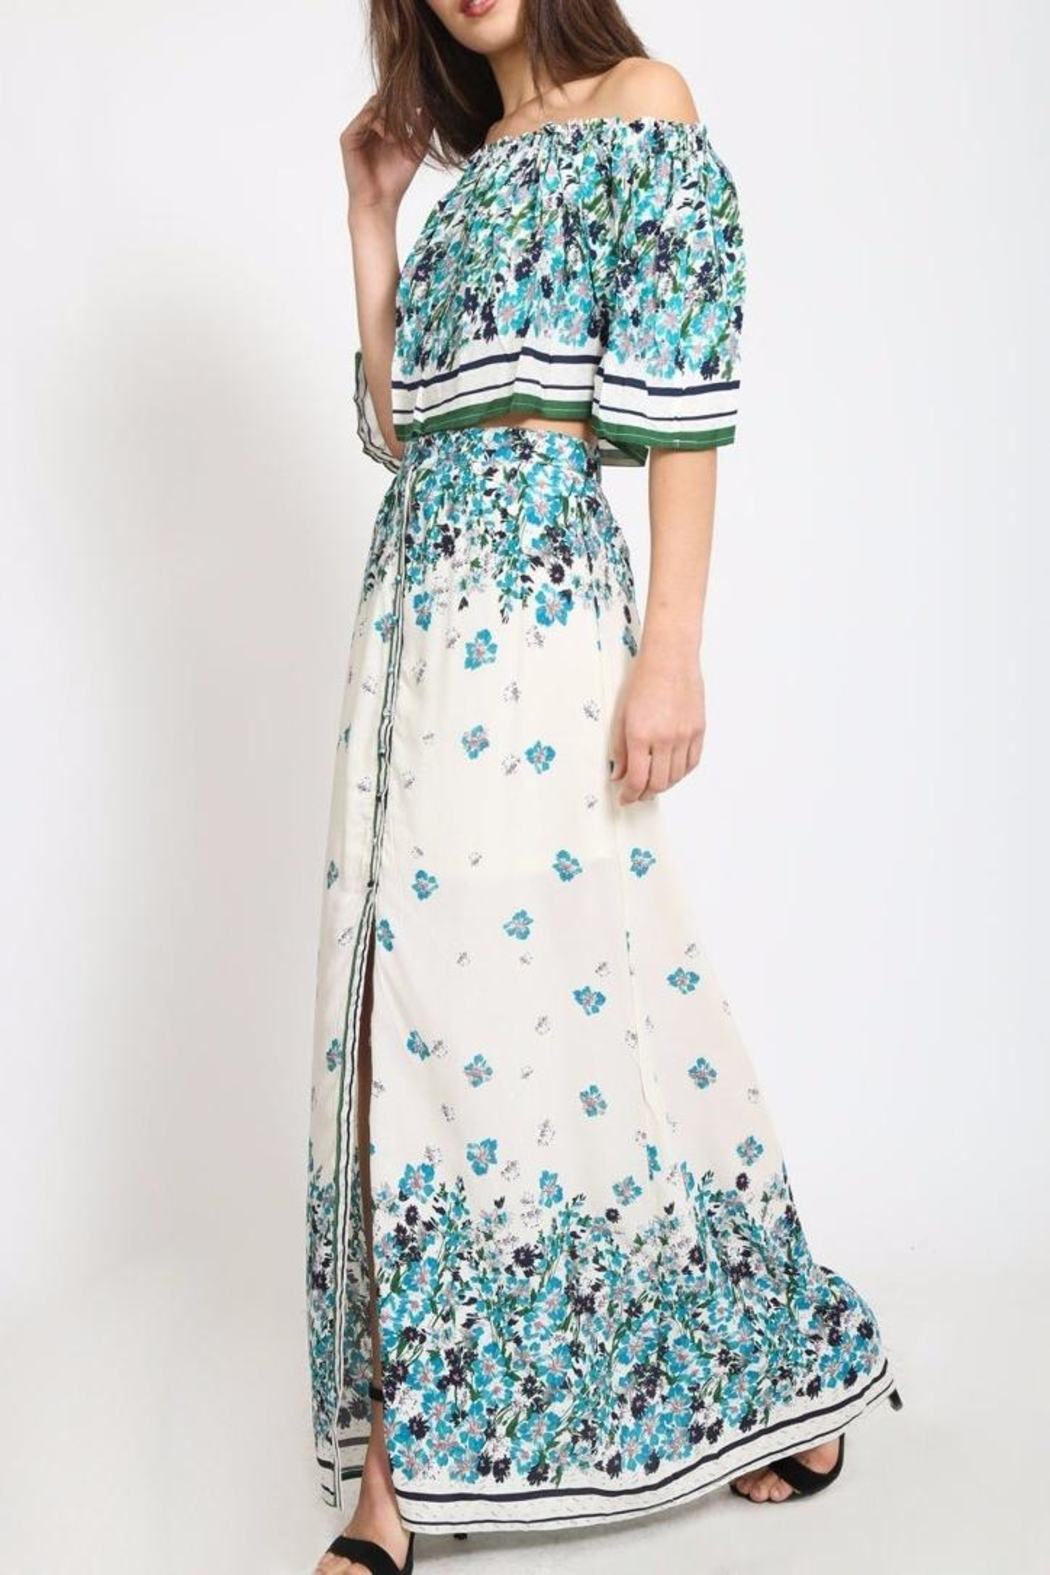 Scout Clothing & Decor Floral Maxi Skirt - Main Image